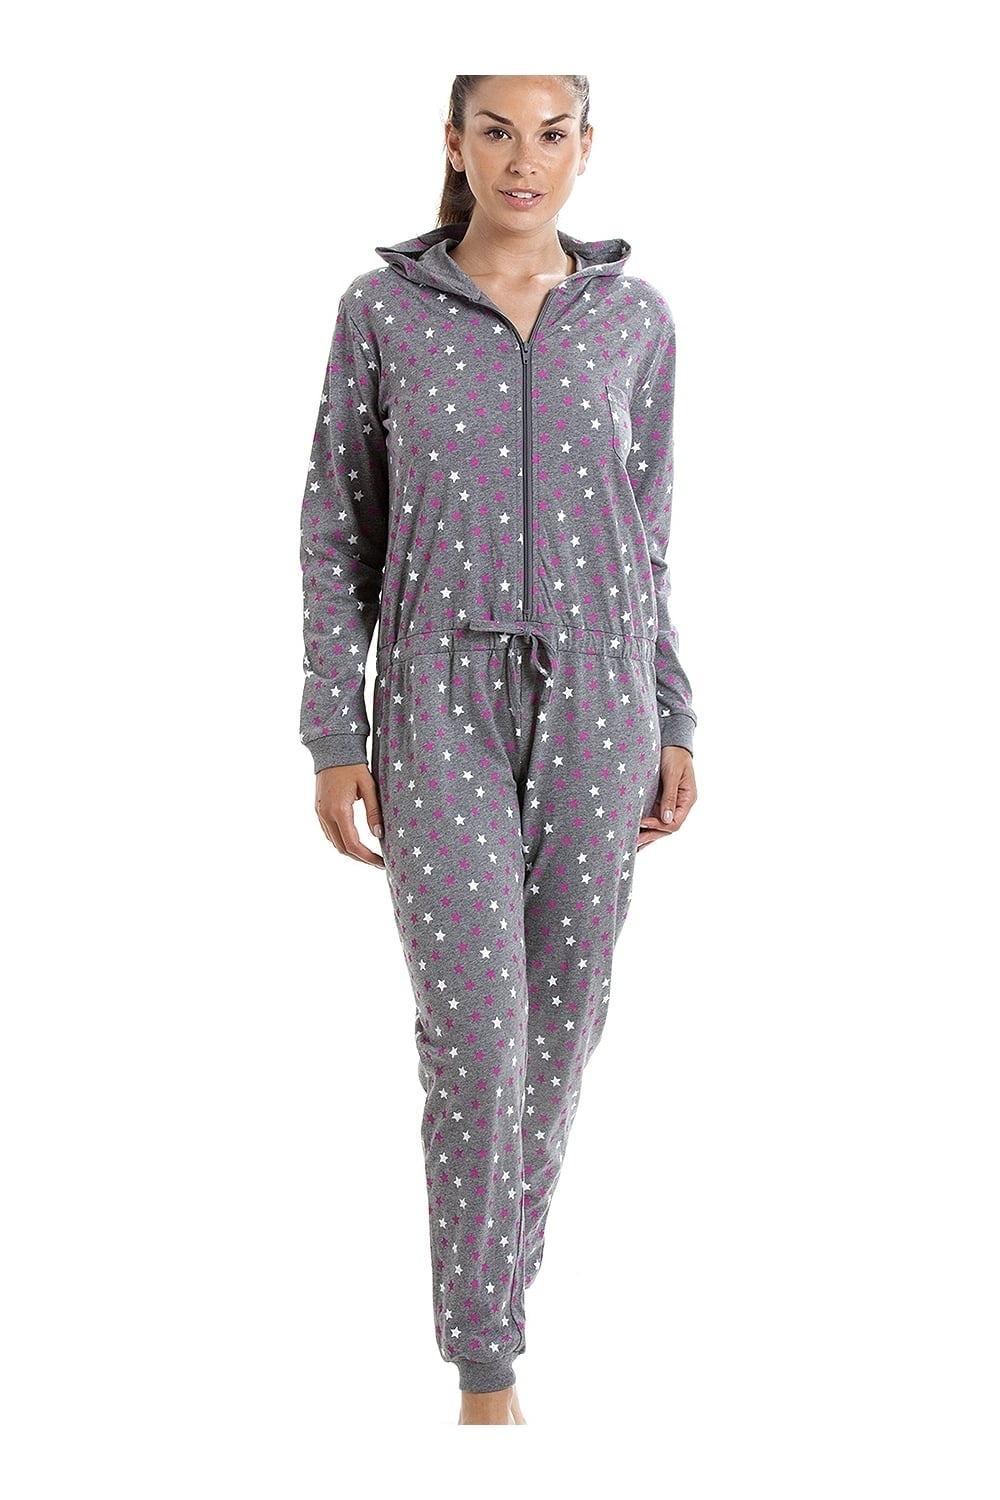 d234e0d5fa0 Camille Various Colour Cotton Star Print Hooded All In One Onesie